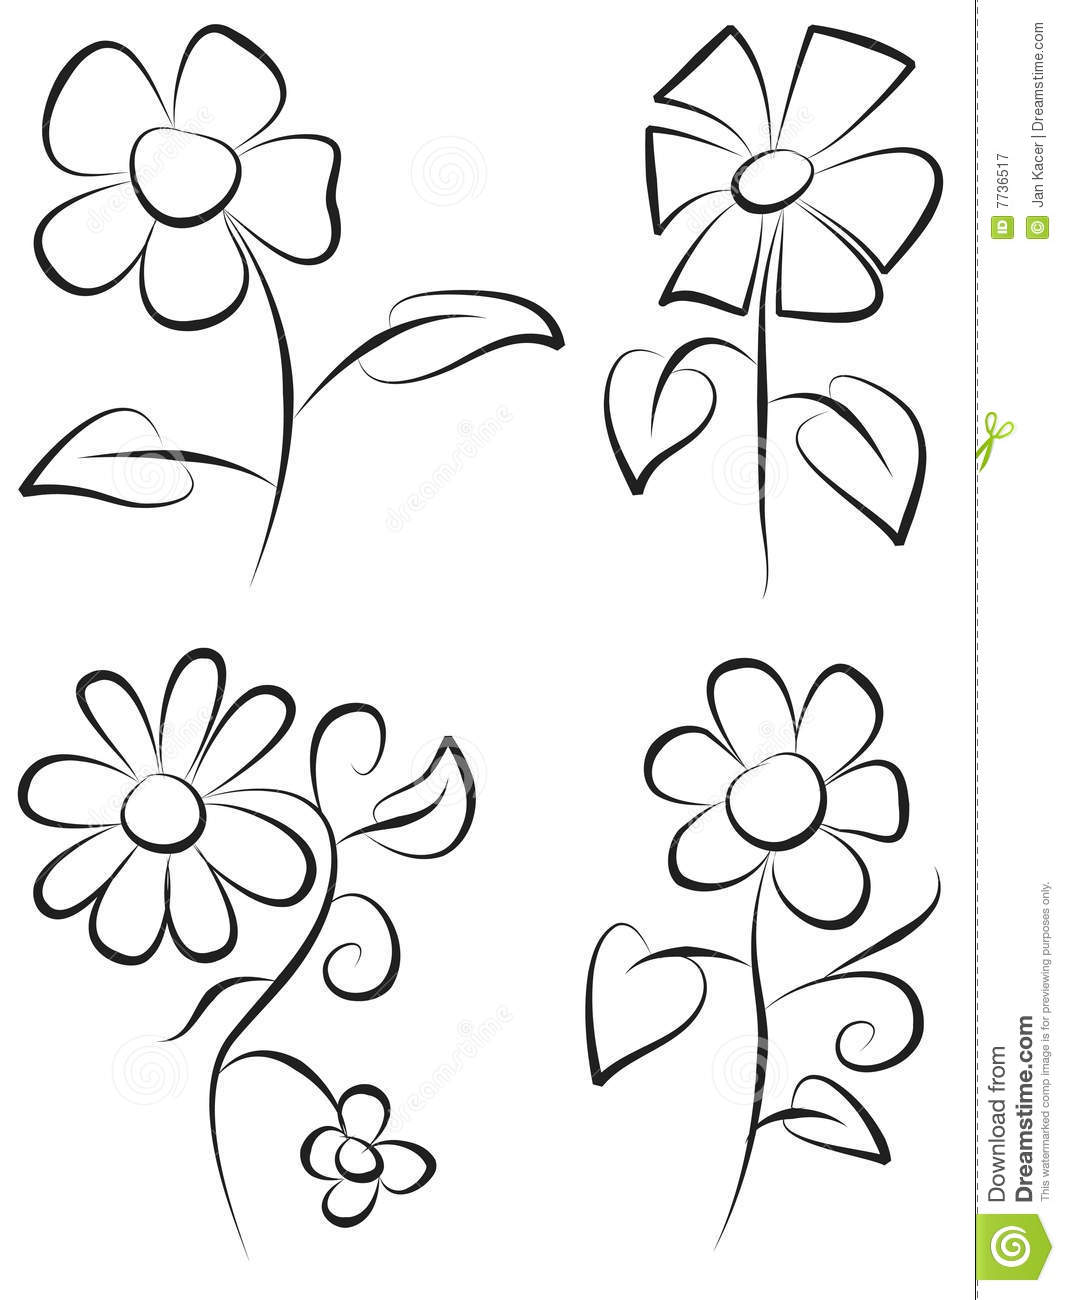 Hand Draw Flowers Stock Vector Illustration Of Form Draw 7736517